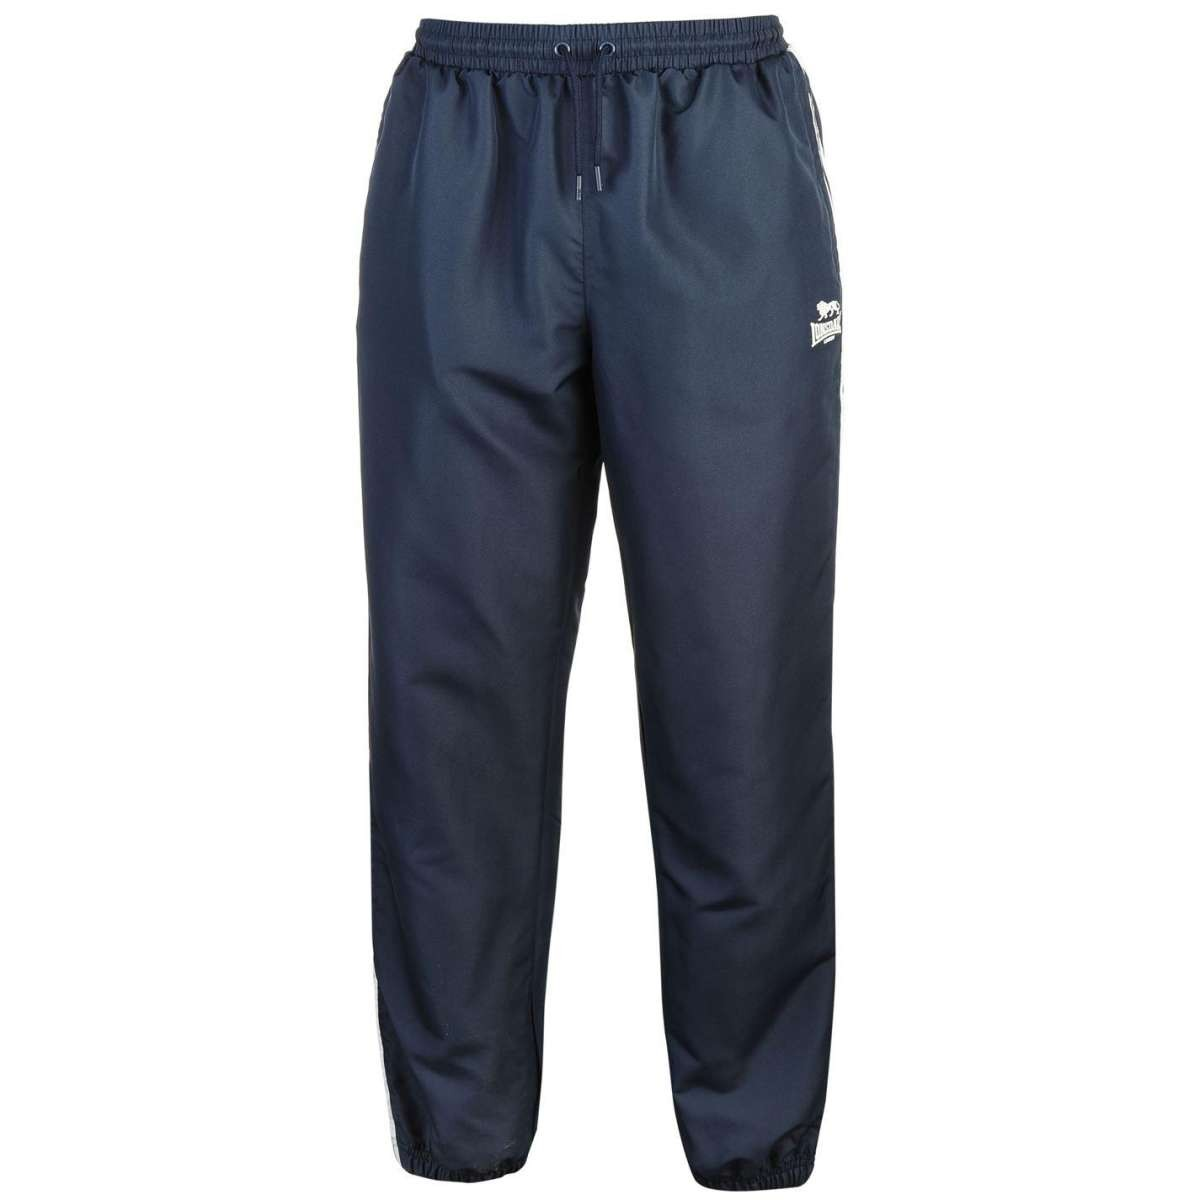 ΑΝΔΡΙΚΗ ΦΟΡΜΑ LONSDALE 2 STRIPE TRACKSUIT BOTTOMS-NAVY